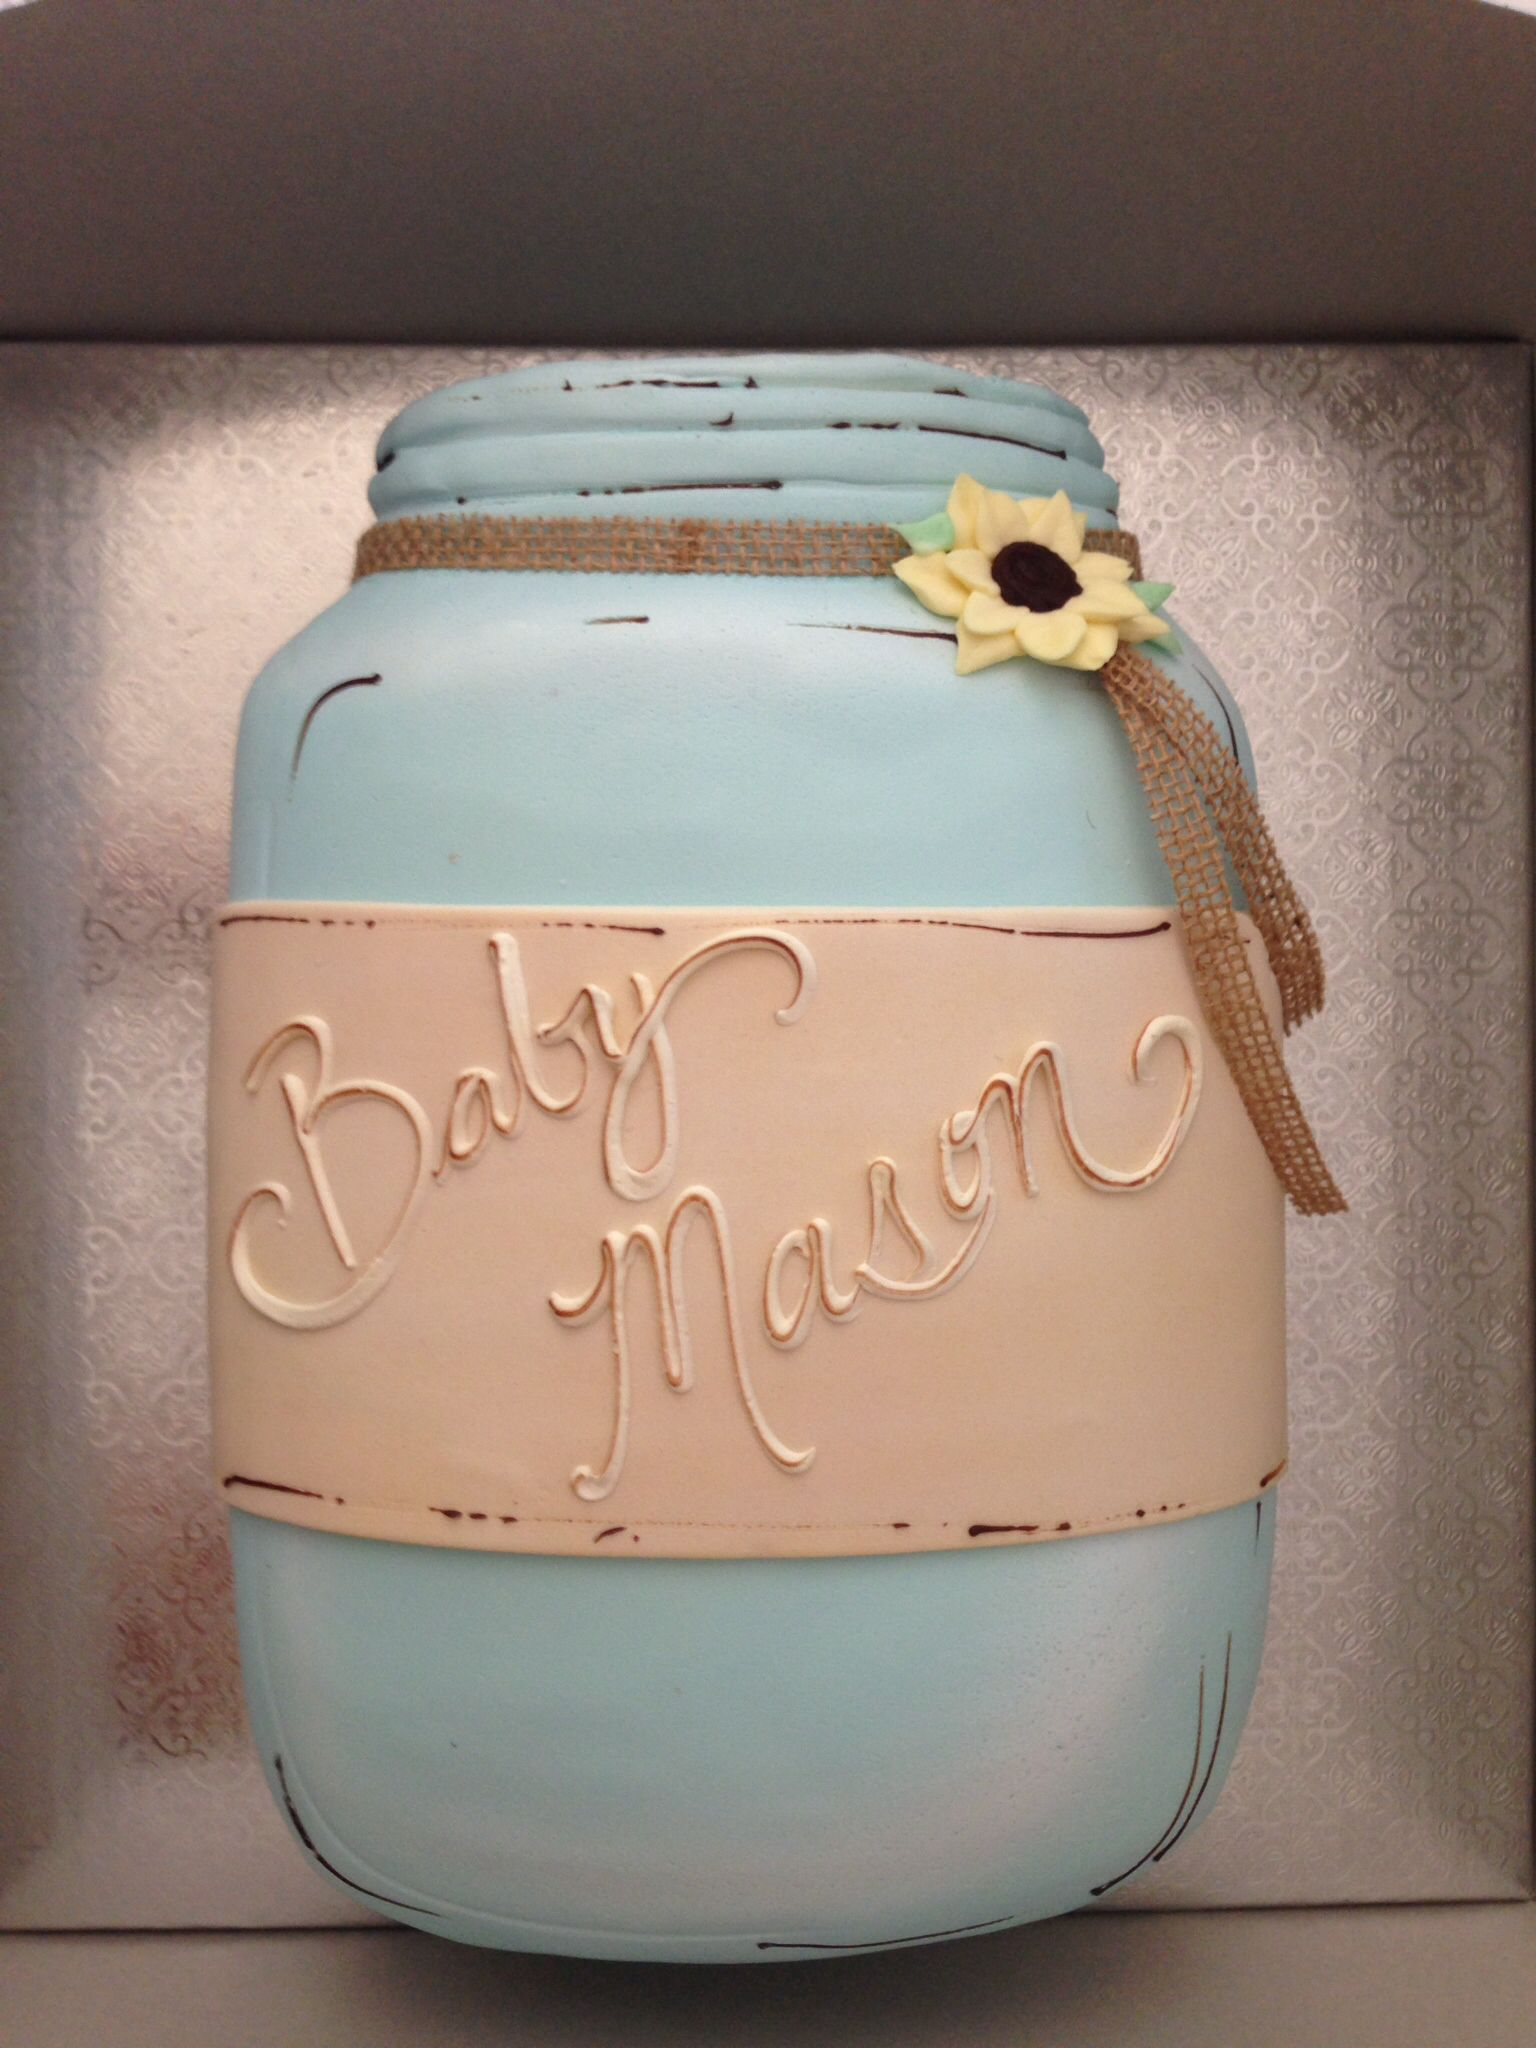 Baby shower cake - country style mason jar - created by Beverly\'s ...